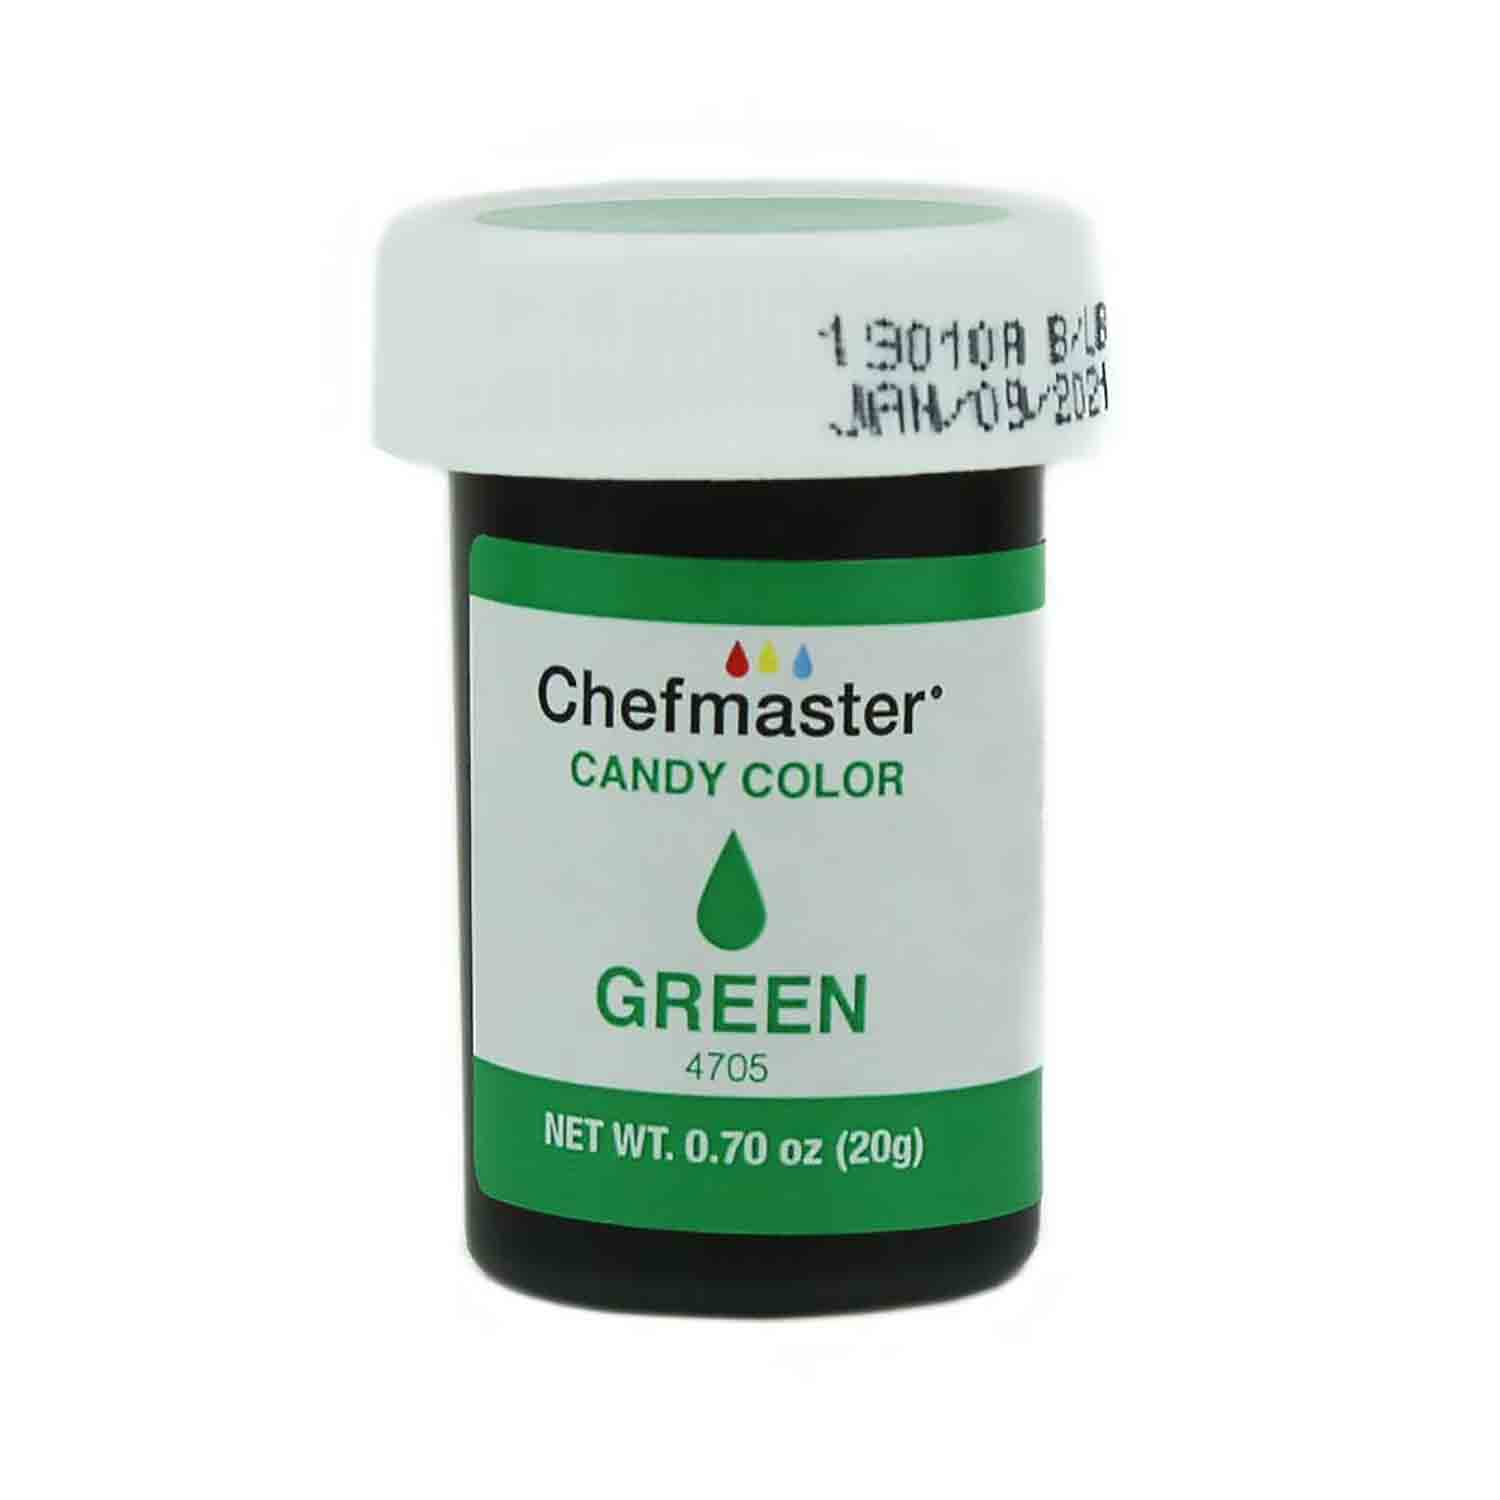 Green Chefmaster Candy Color